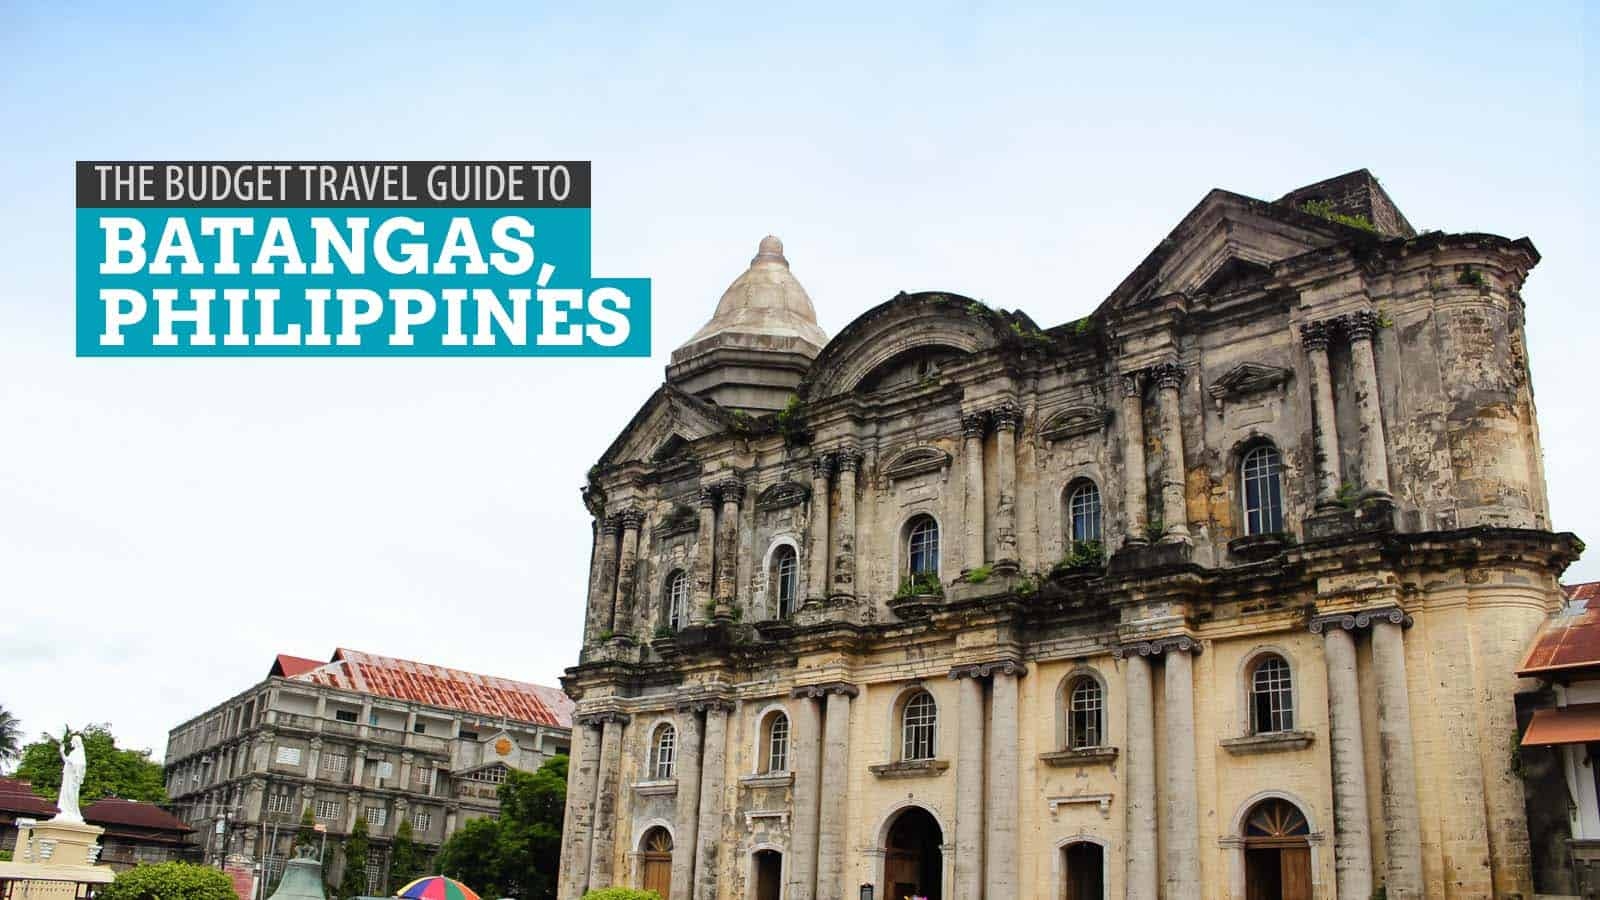 Thesis about tourism in batangas